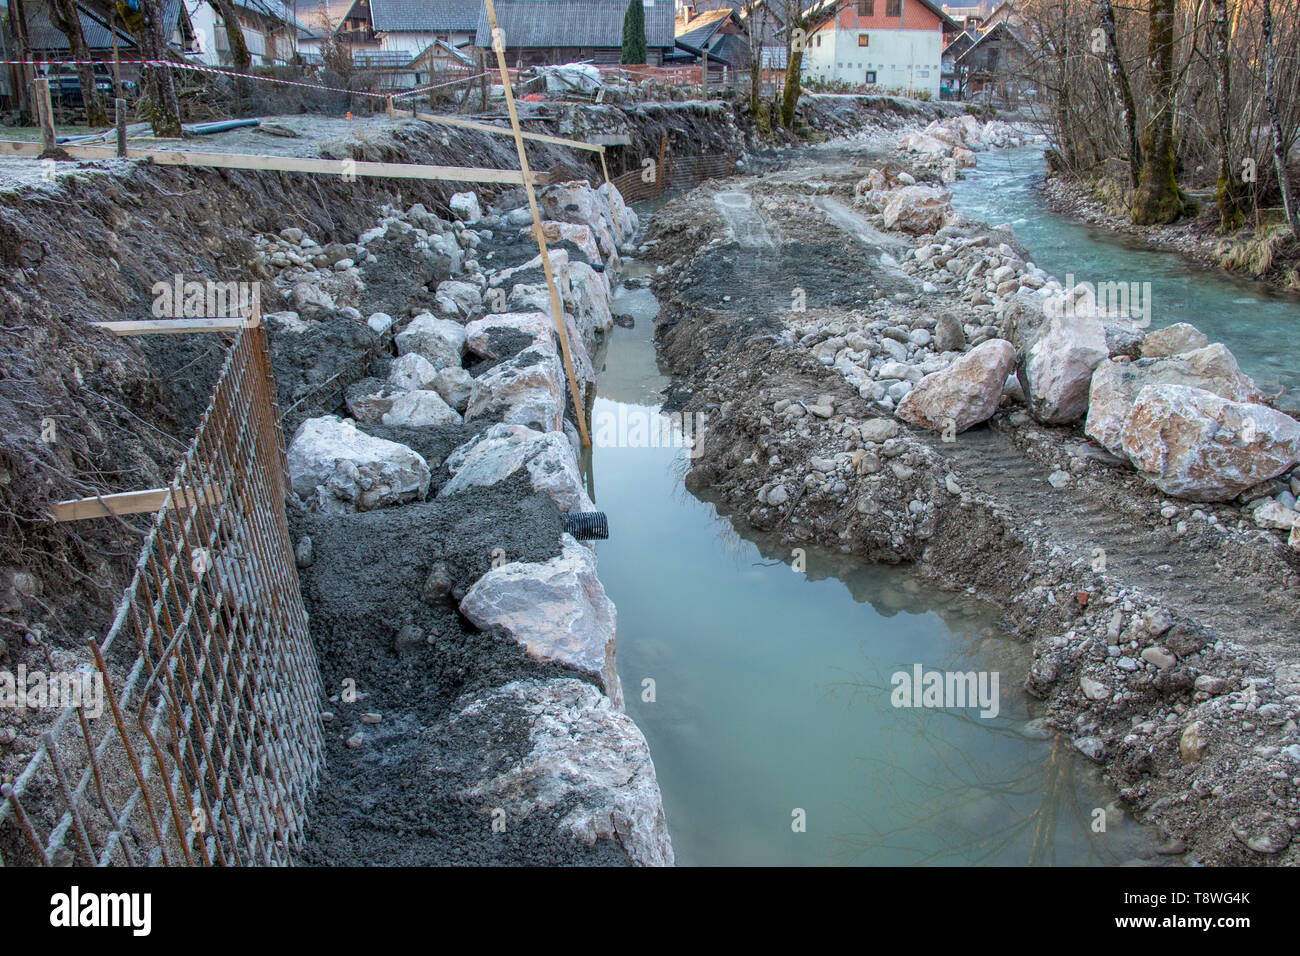 civil engineering on river bank - Stock Image